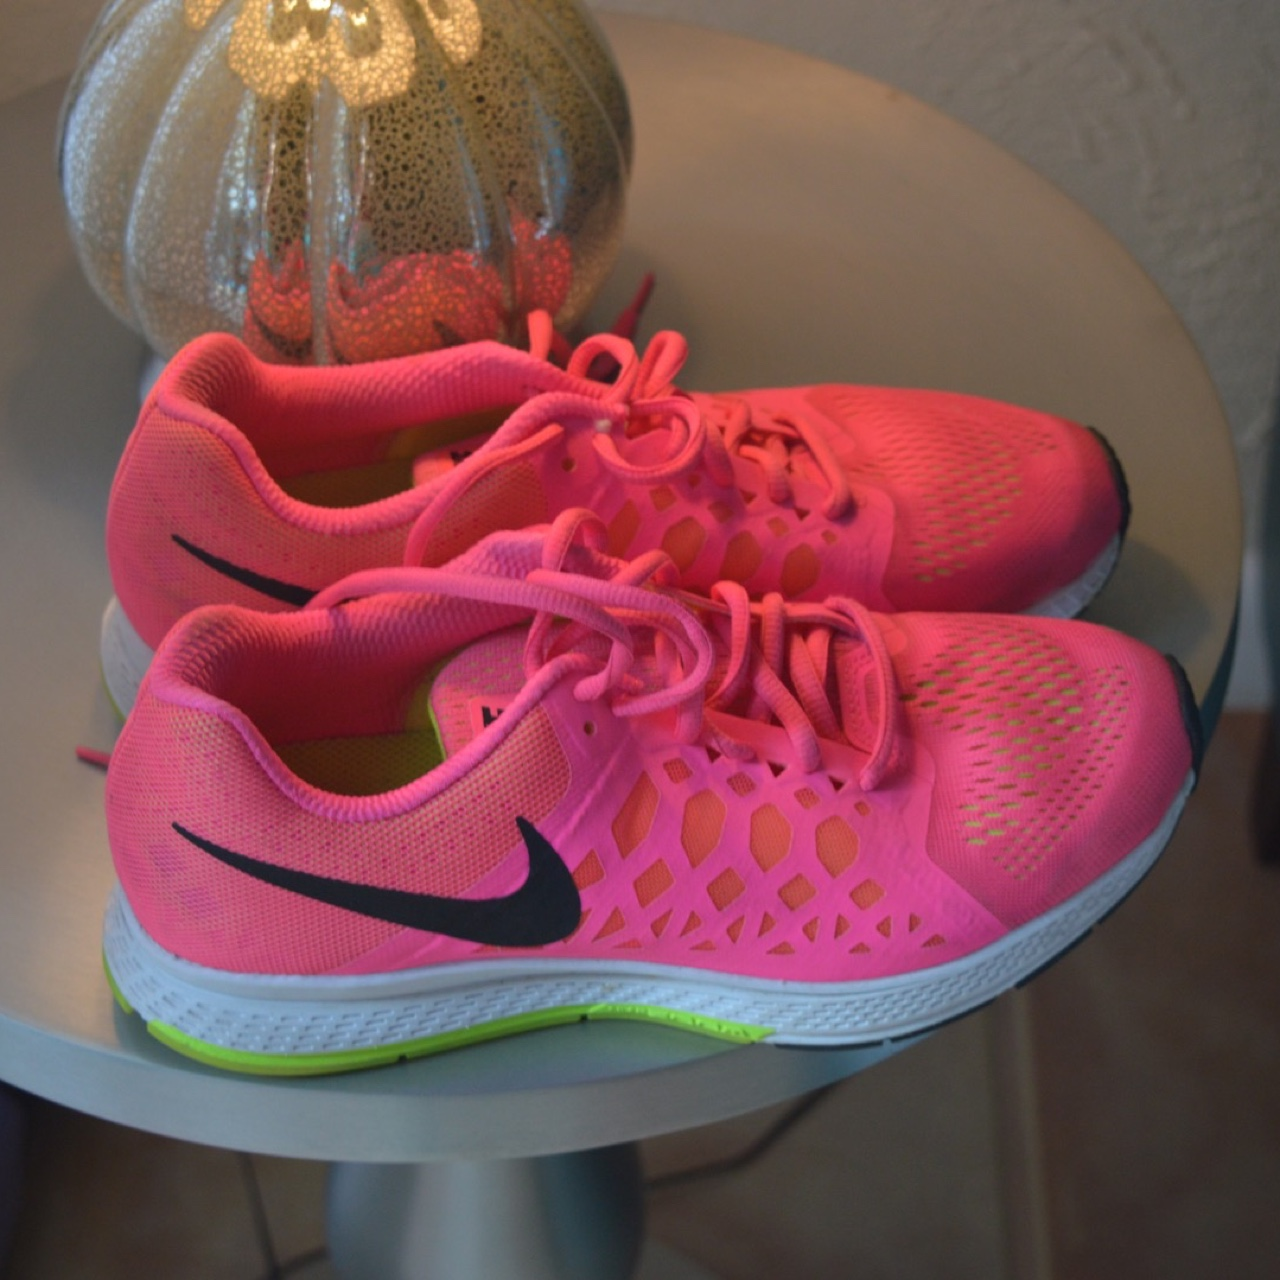 Neon pink Nike running shoes with some